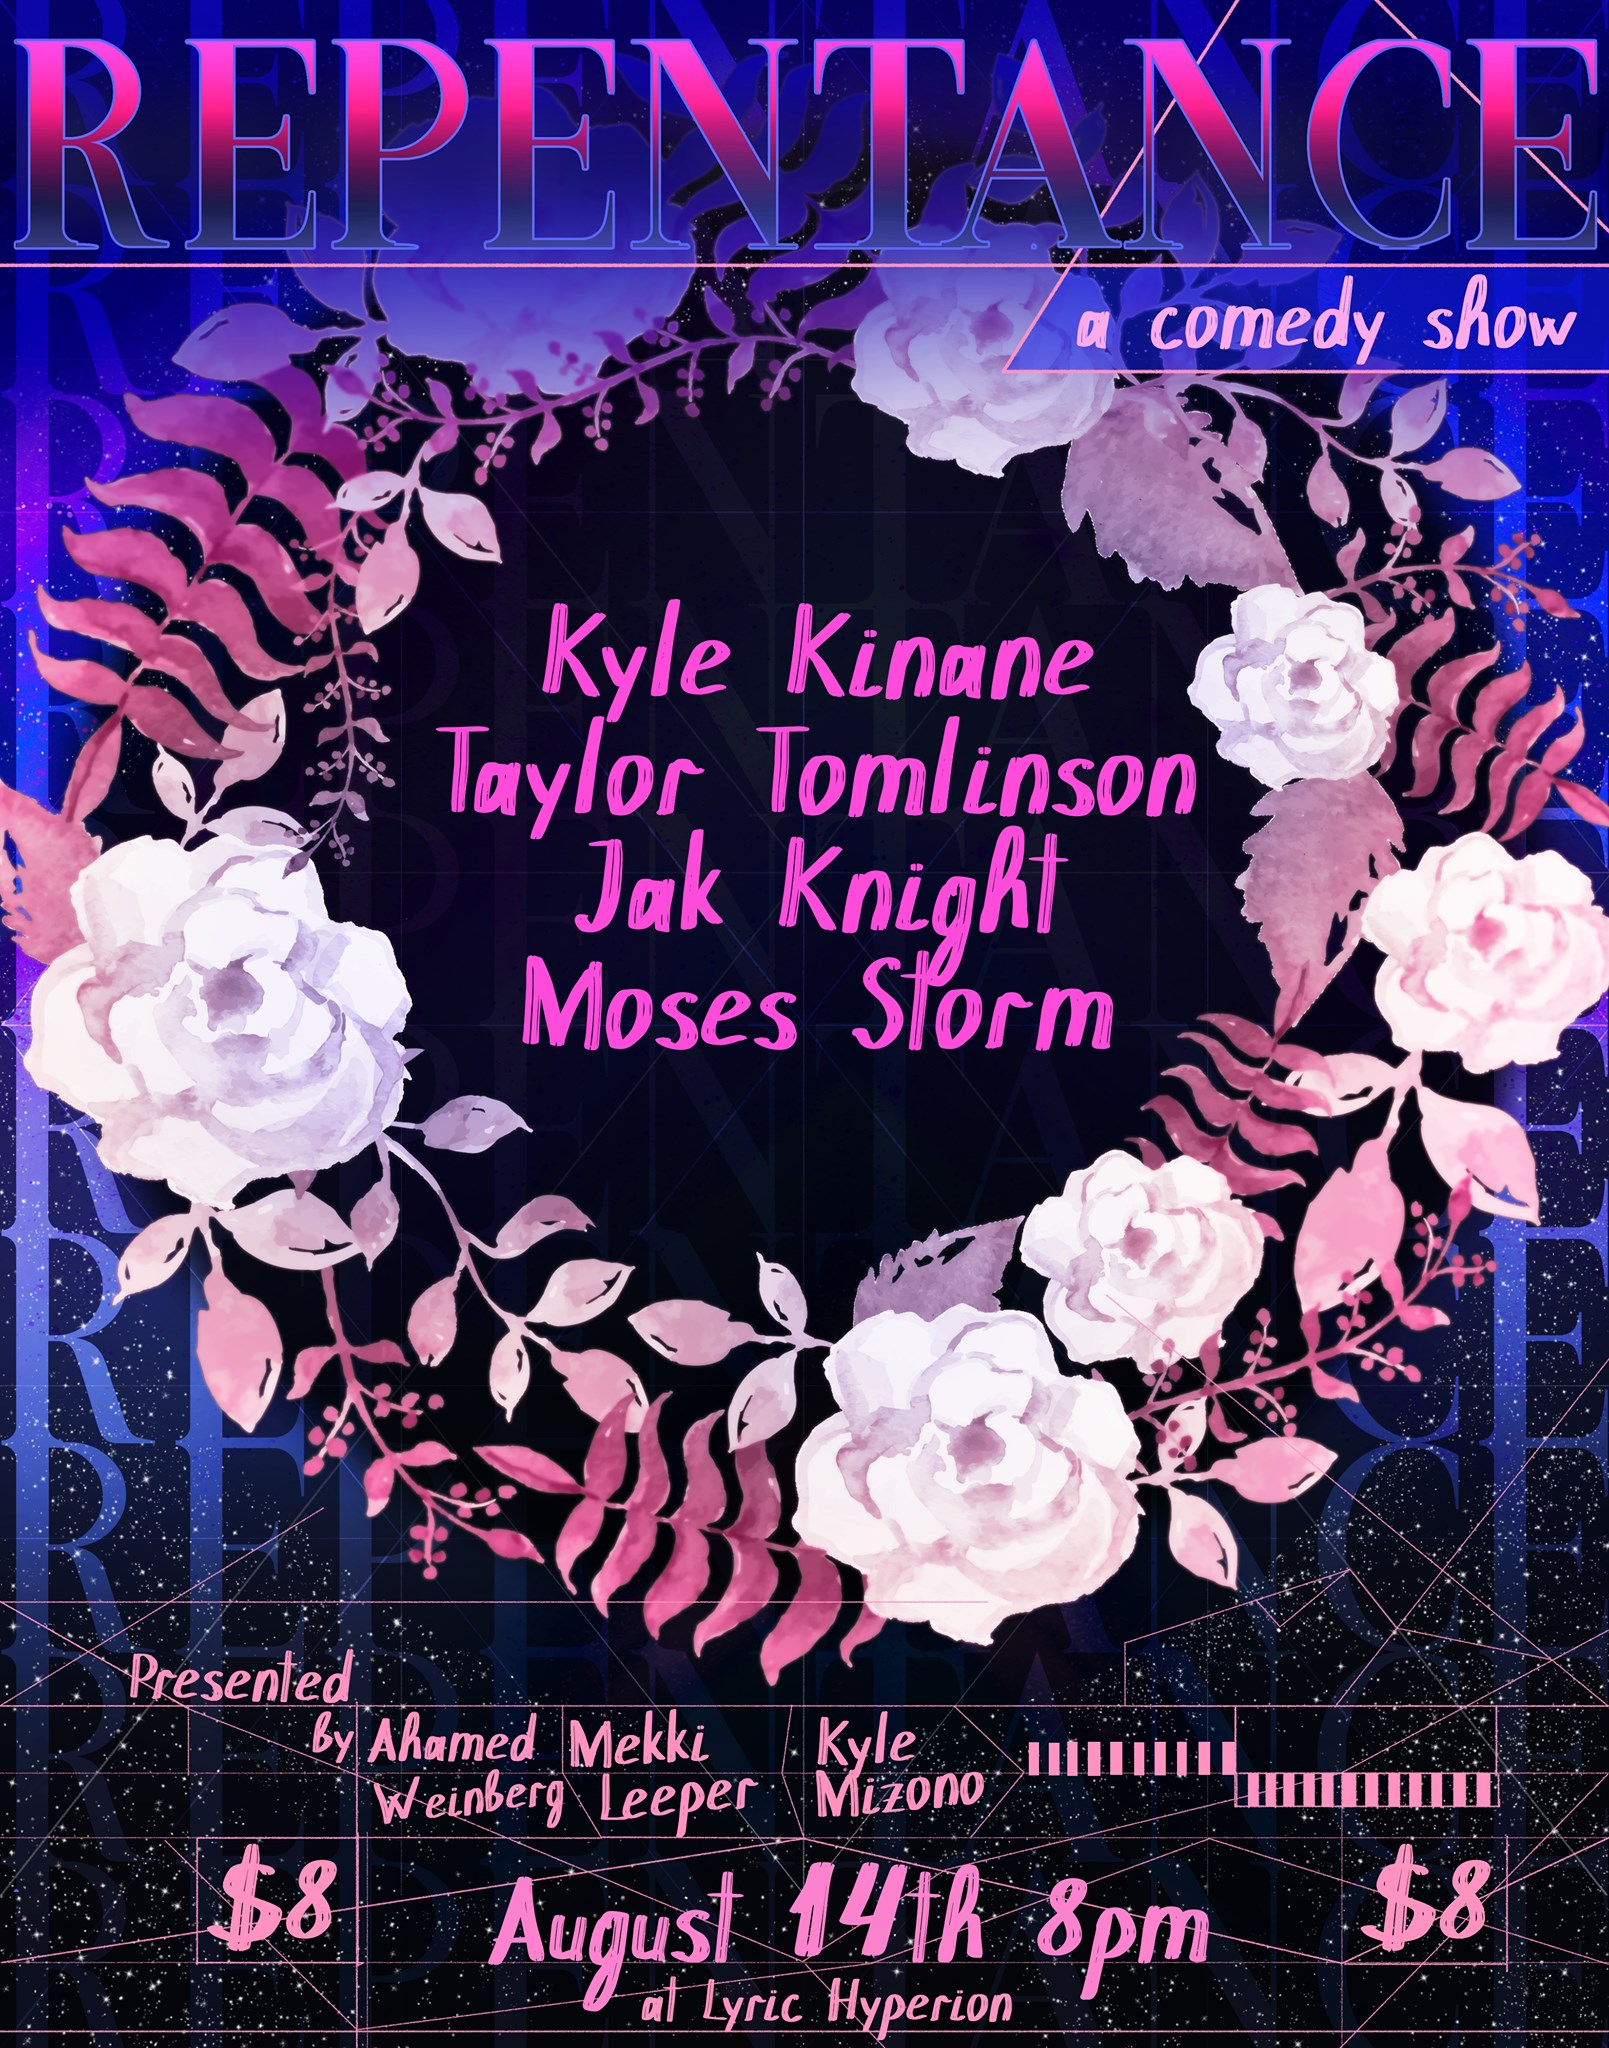 TICKETS    Ahamed Weinberg, Mekki Leeper and Kyle Mizono bring you an all star lineup every second Wednesday of the month!  Featuring:  Kyle Kinane Taylor Tomlinson Jak Knight Danielle Perez Moses Storm